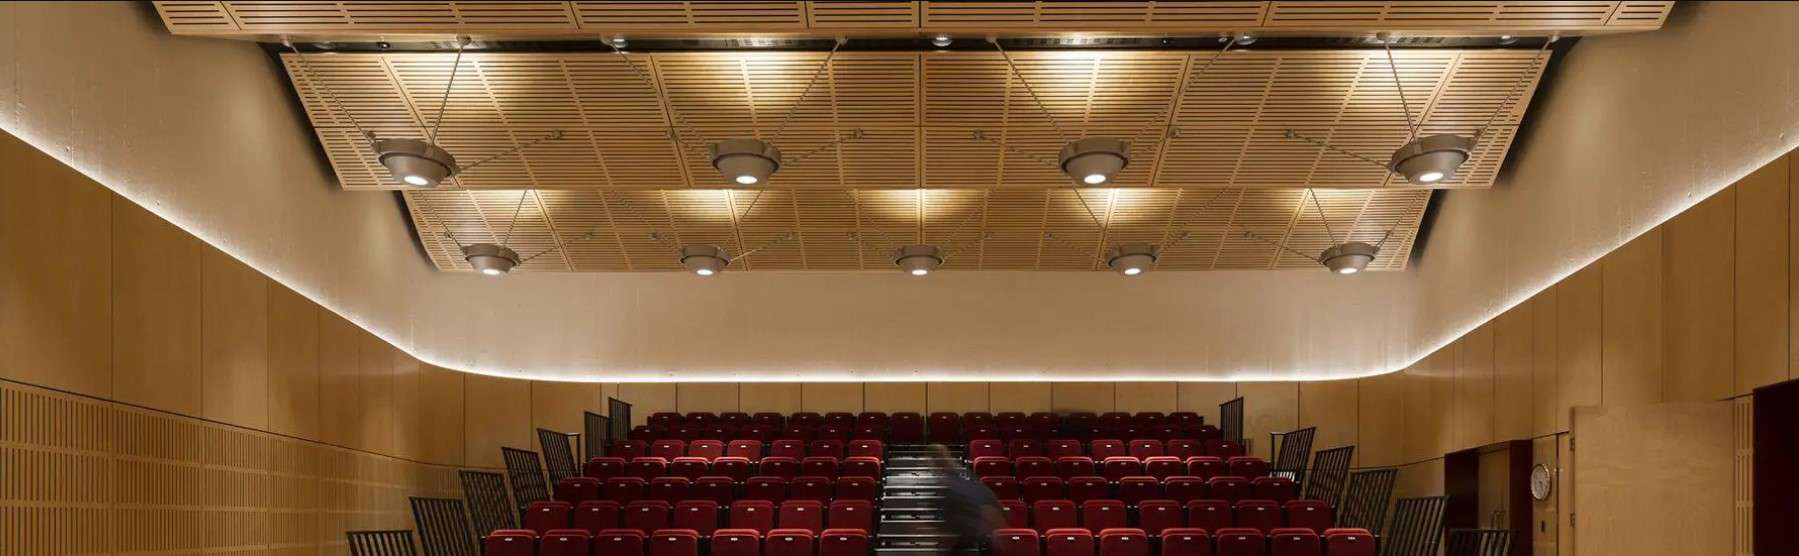 acoustic-panels-architectural-soundproofing